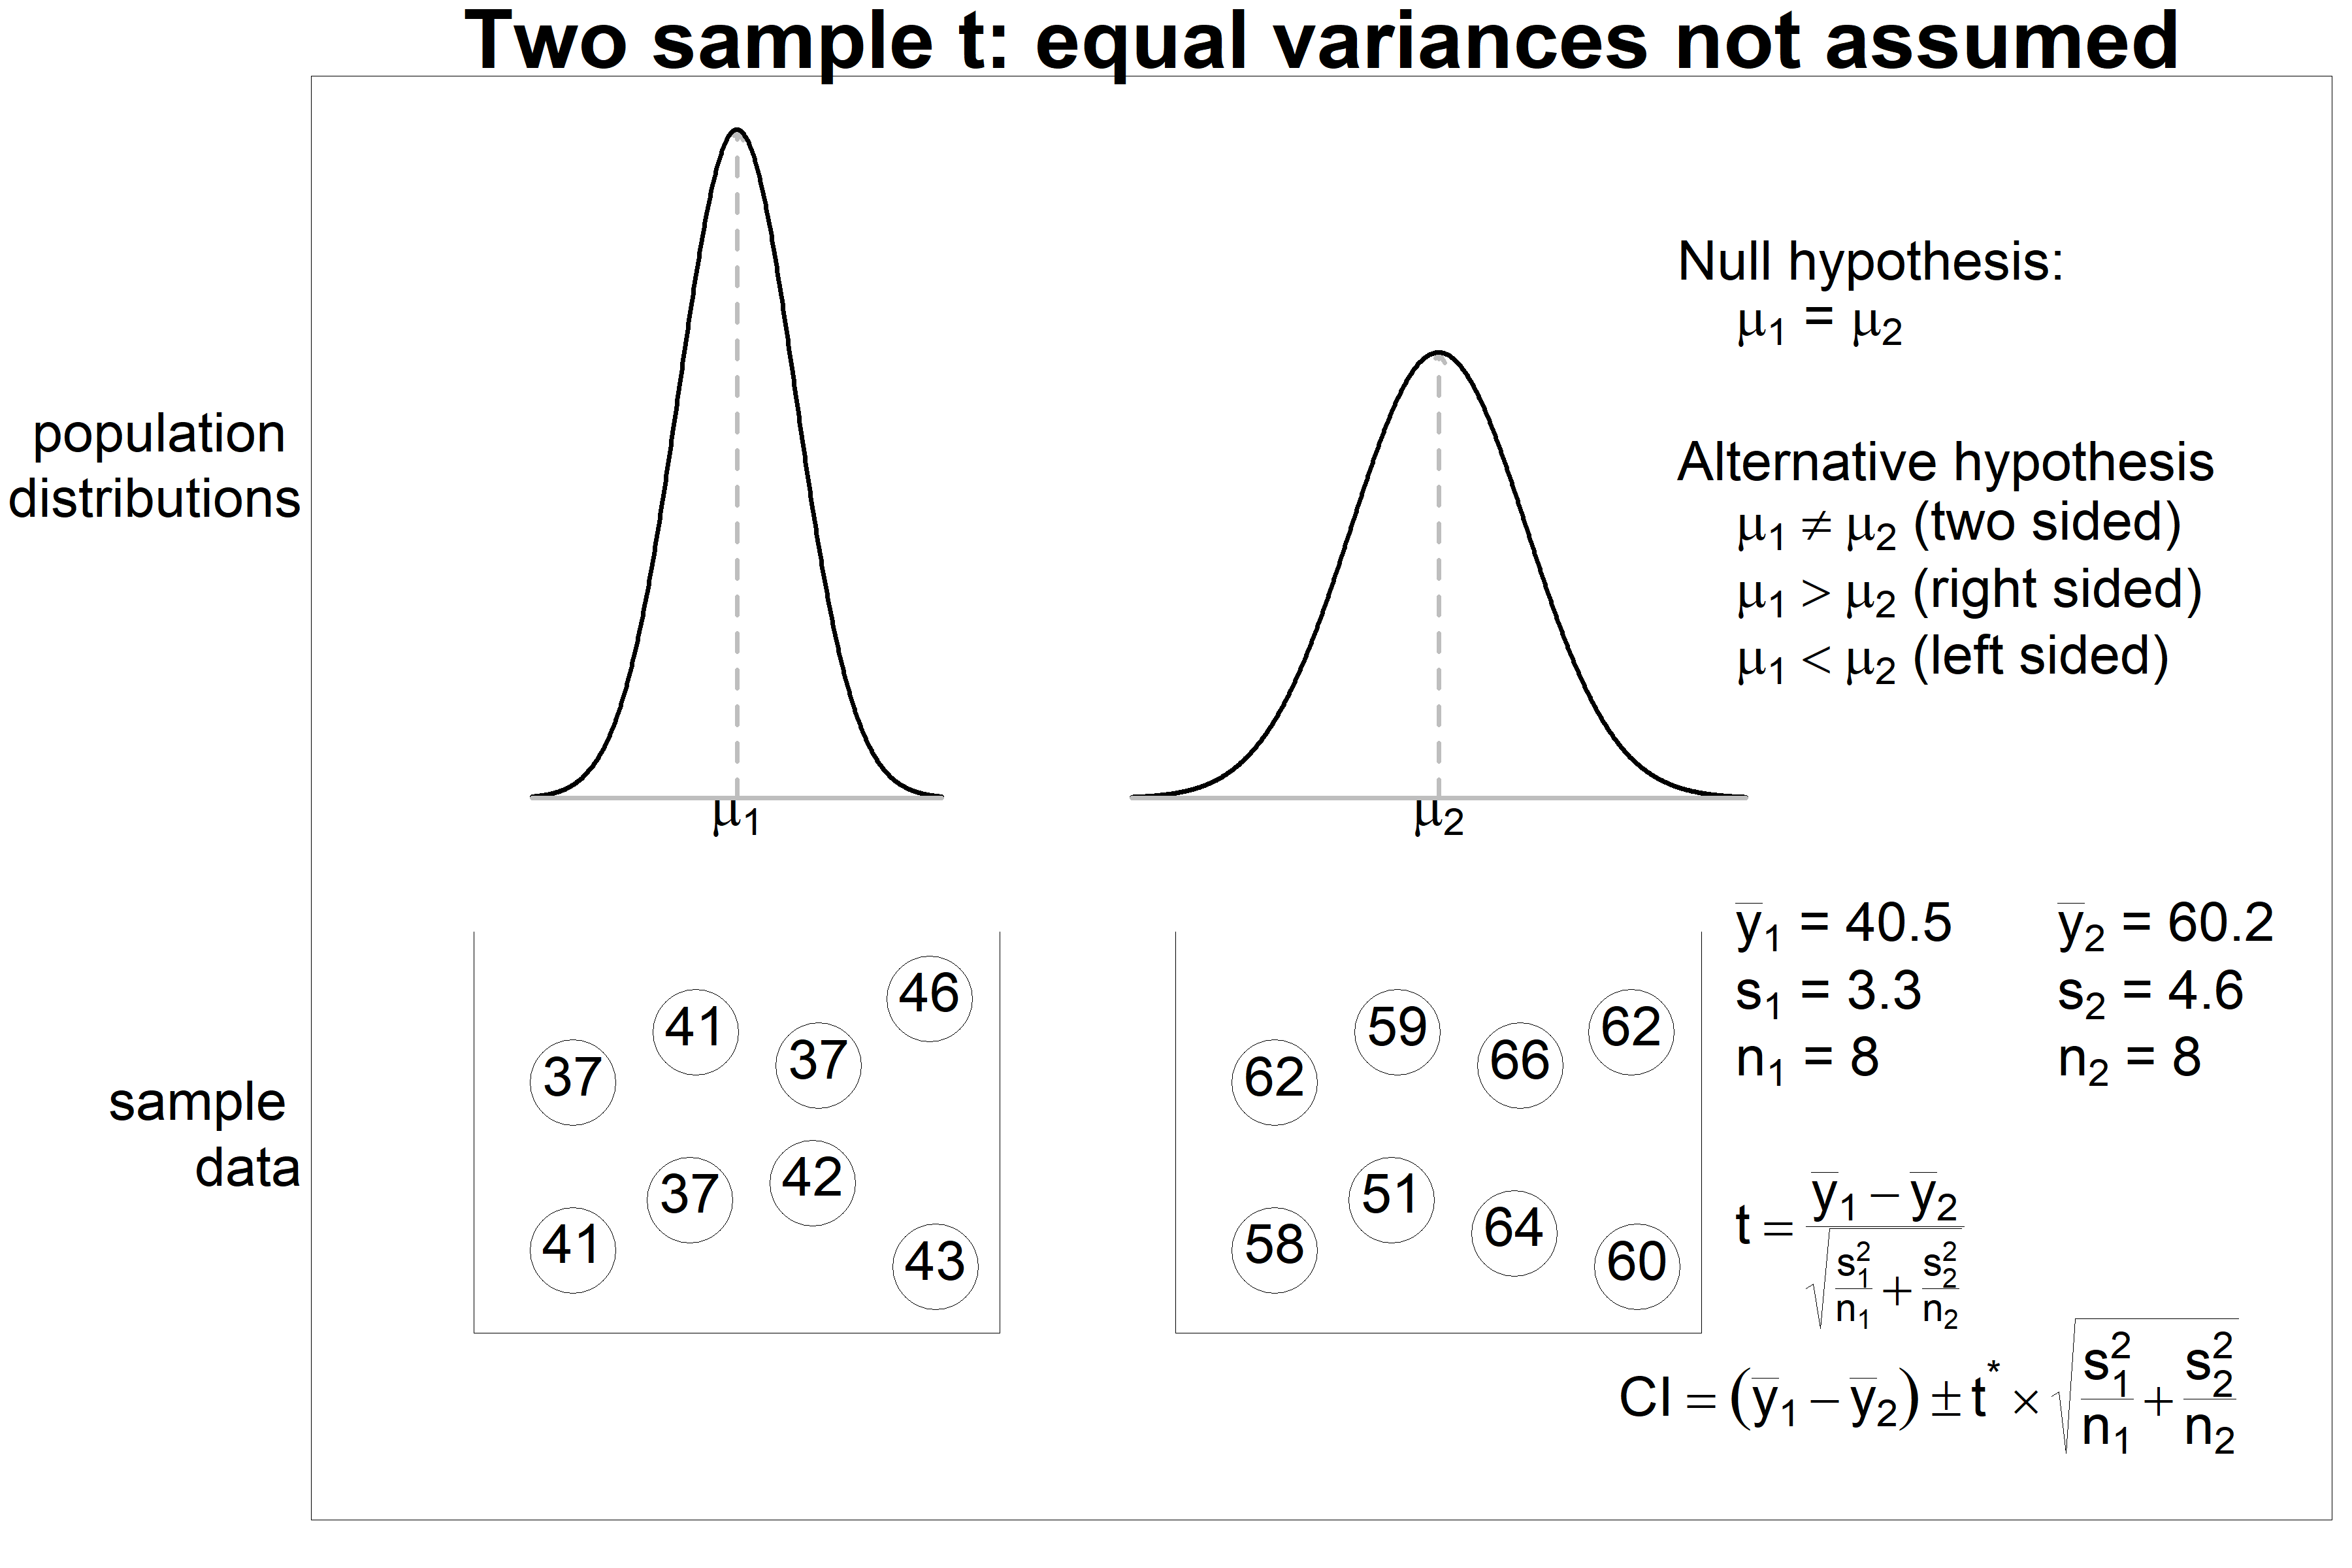 Two sample t test - equal variances not assumed